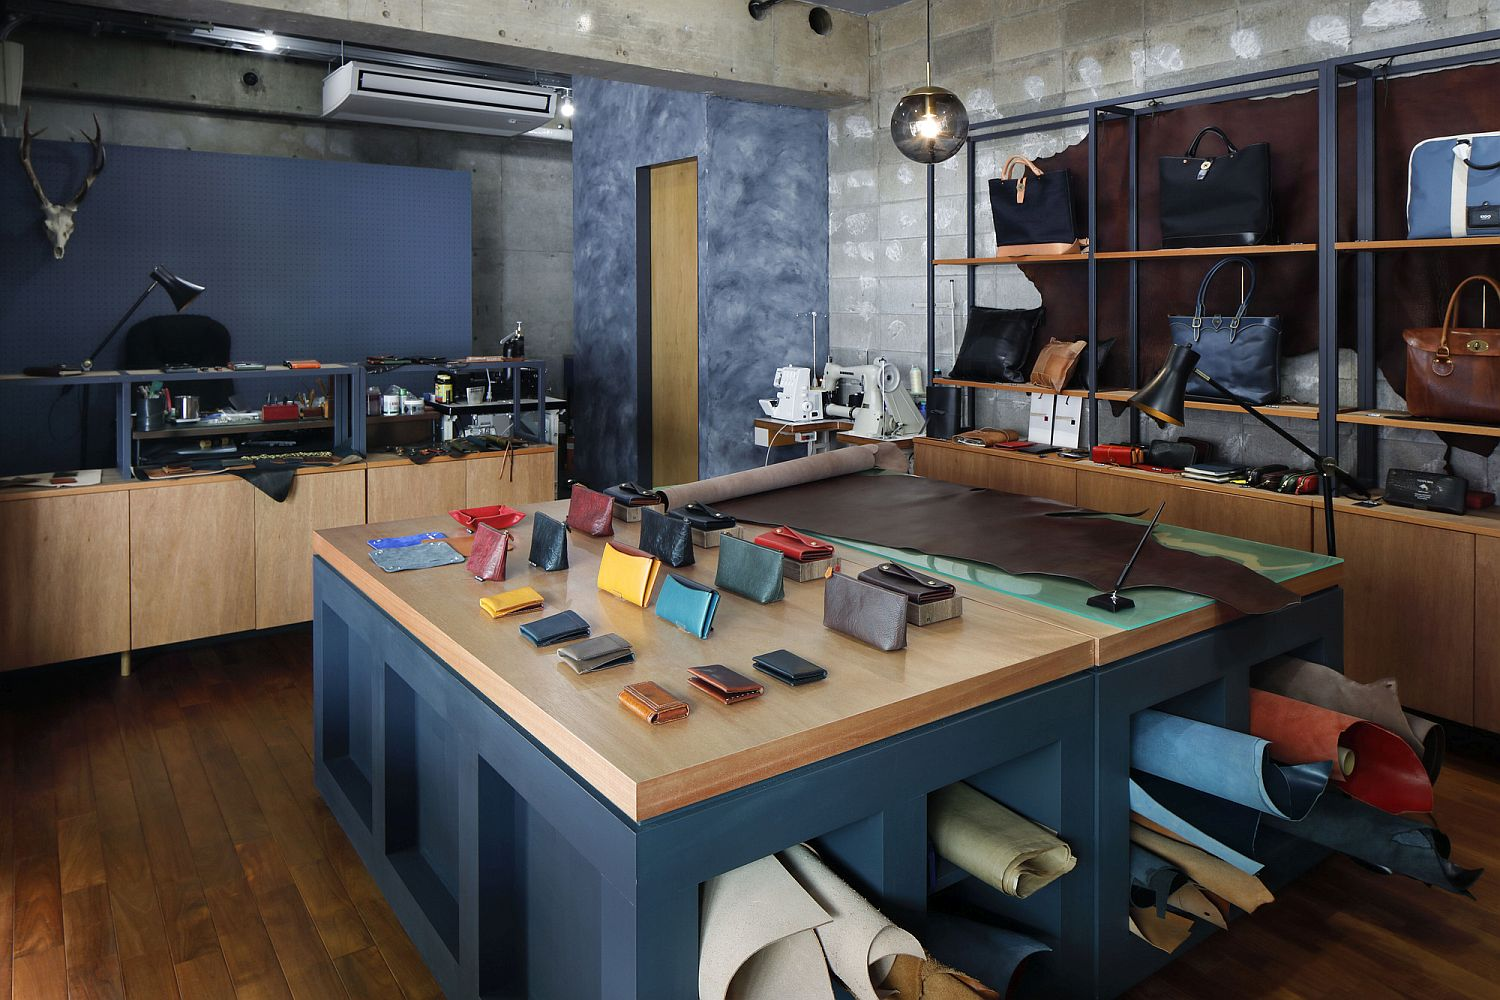 Central island of the shop in deep blue with a wooden countertop